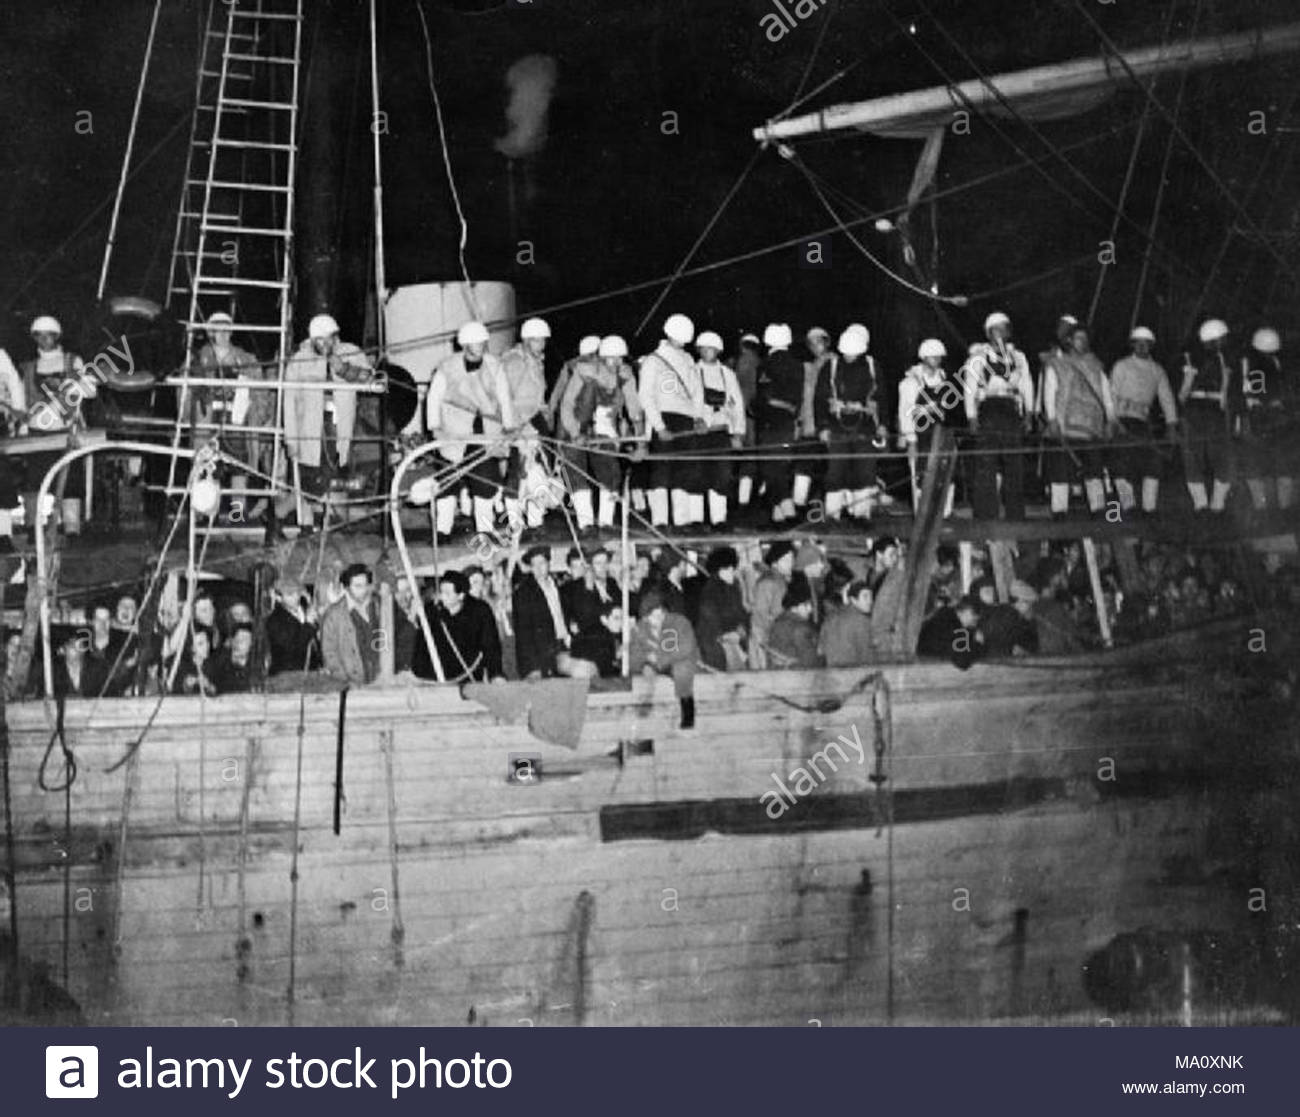 Immigrant Ship Stock Photos Amp Immigrant Ship Stock Images